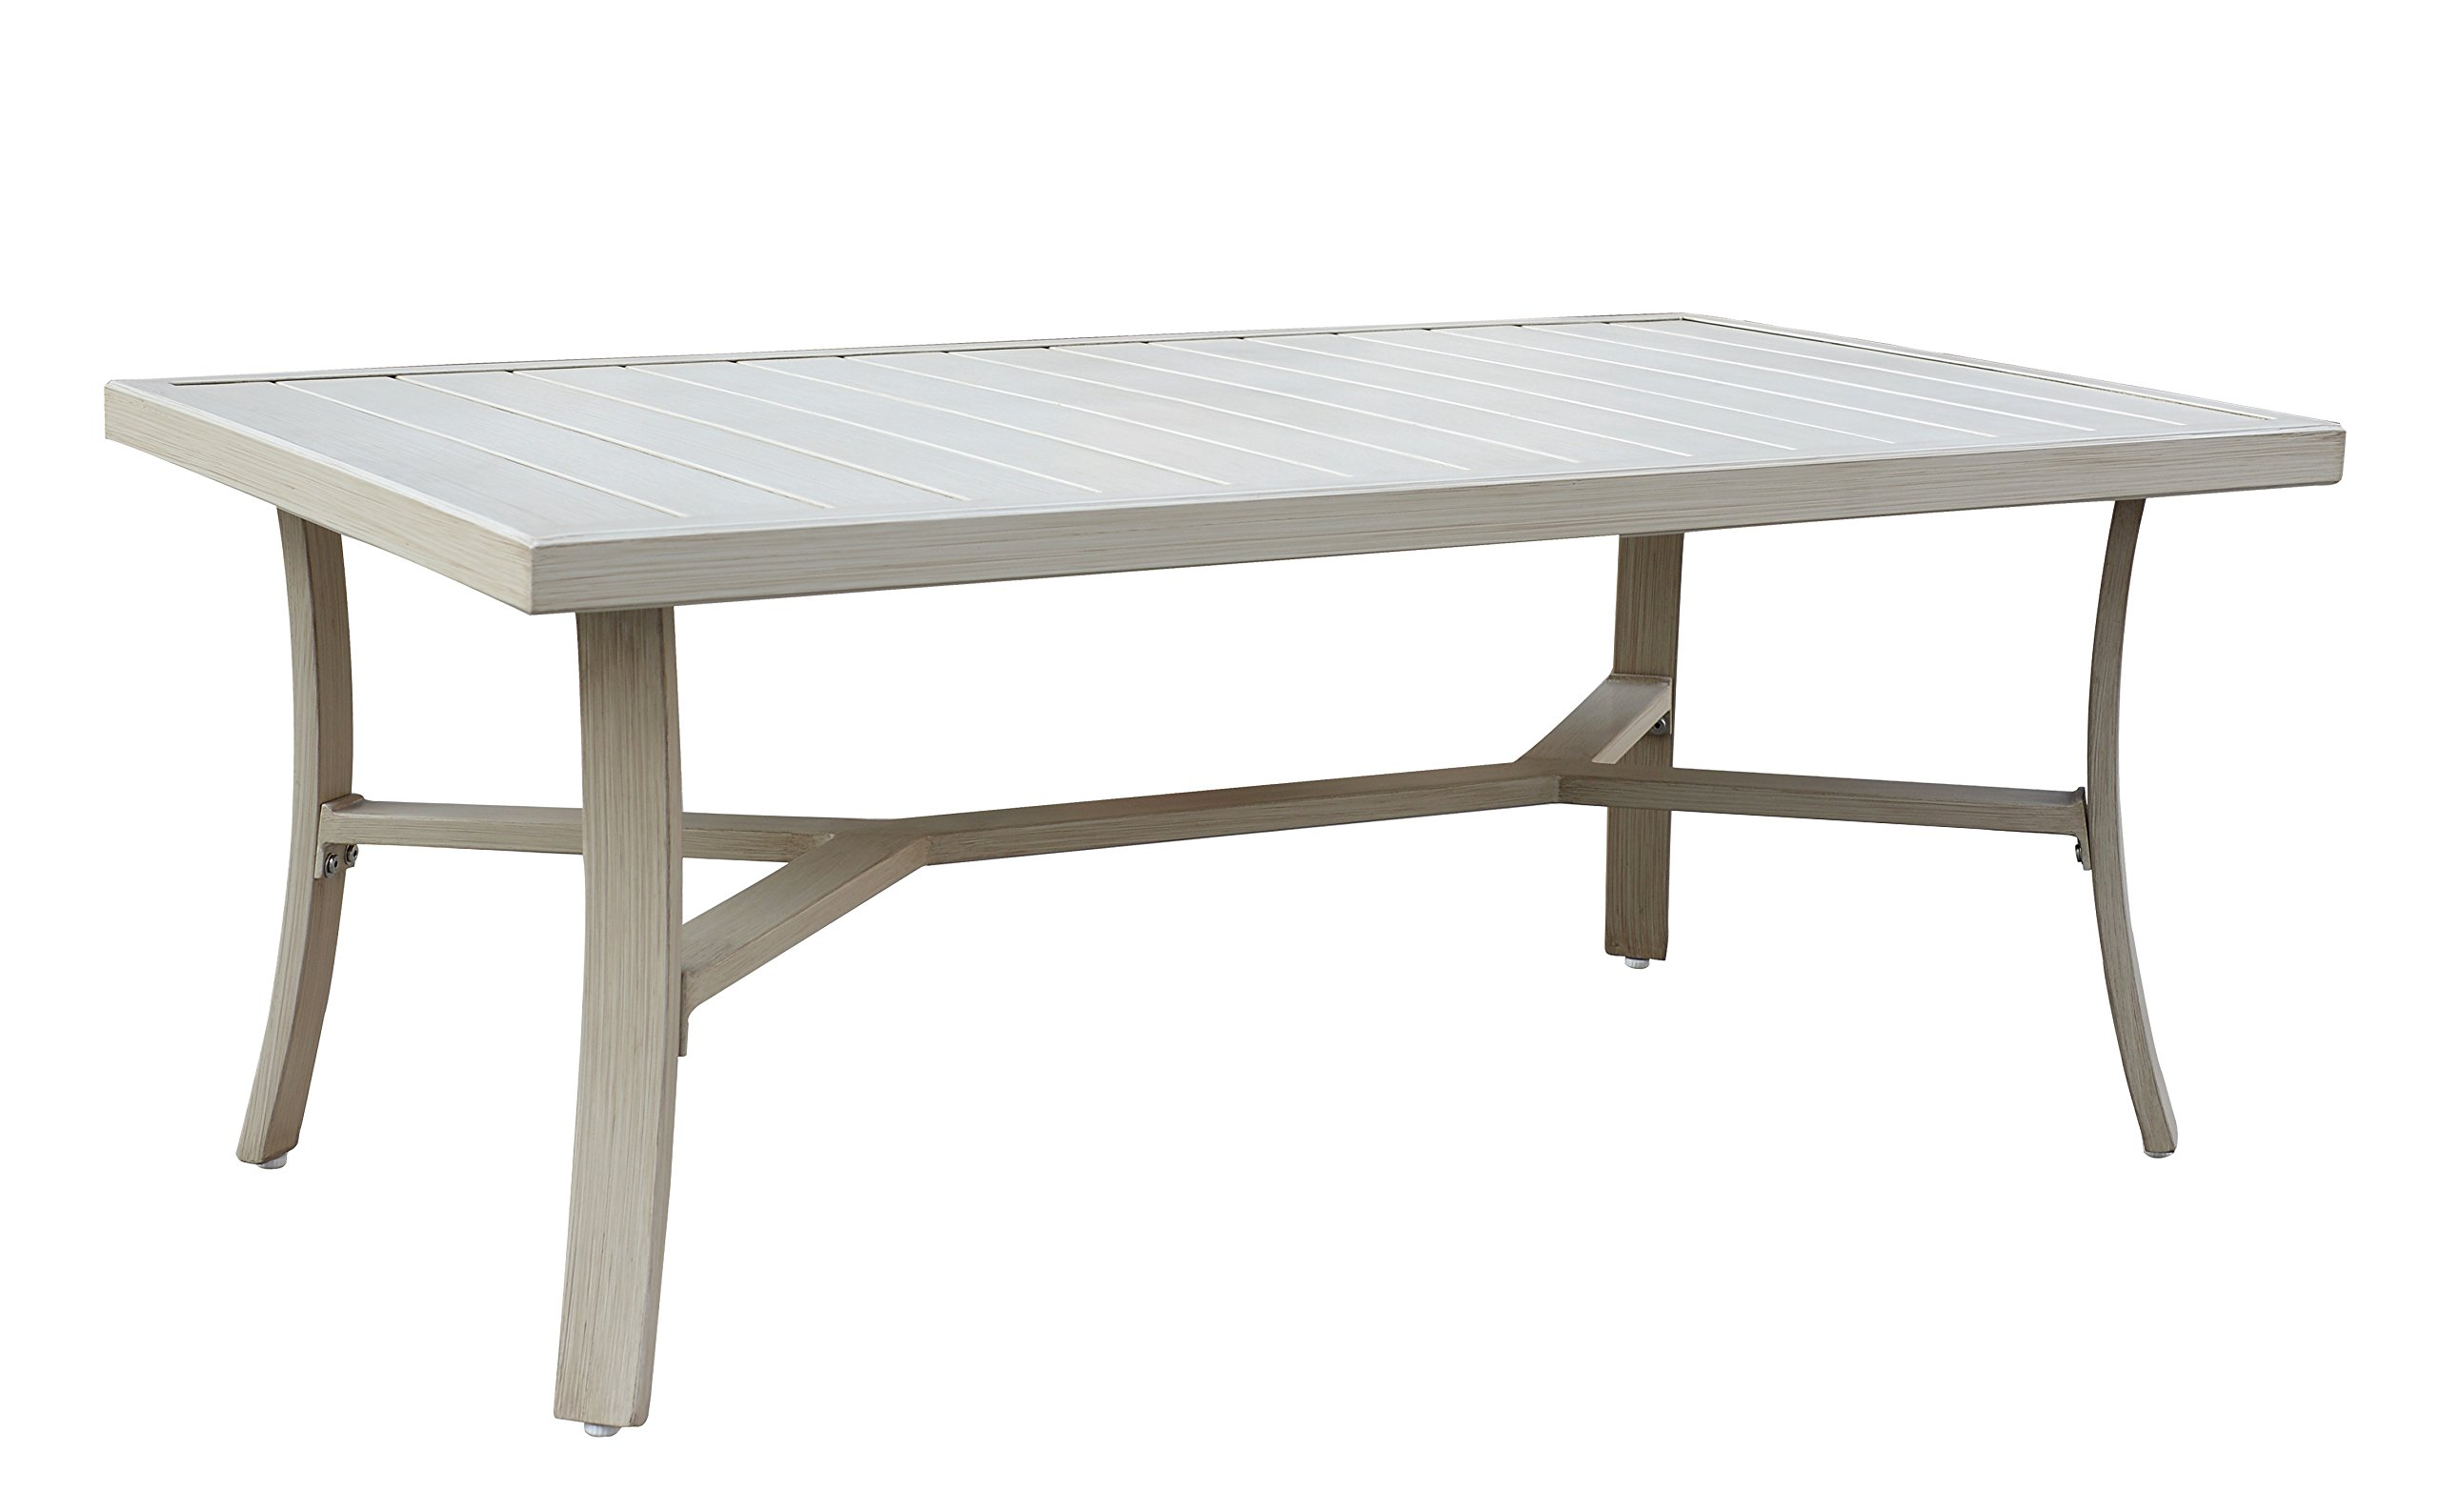 Courtyard Casual Camel Torino Aluminum Outdoor Rectangle Coffee Table - Great for any outdoor setting: patio, covered patio, deck, fire pit, outdoor kitchen, Poolside, lanai, gazebo, etc. Fade and UV resistant and safe in full sun exposure. Heavy duty aluminum powder coated framing for years of use outdoors in the harshest weather conditions. - patio-tables, patio-furniture, patio - 71Ixel6Xi4L -